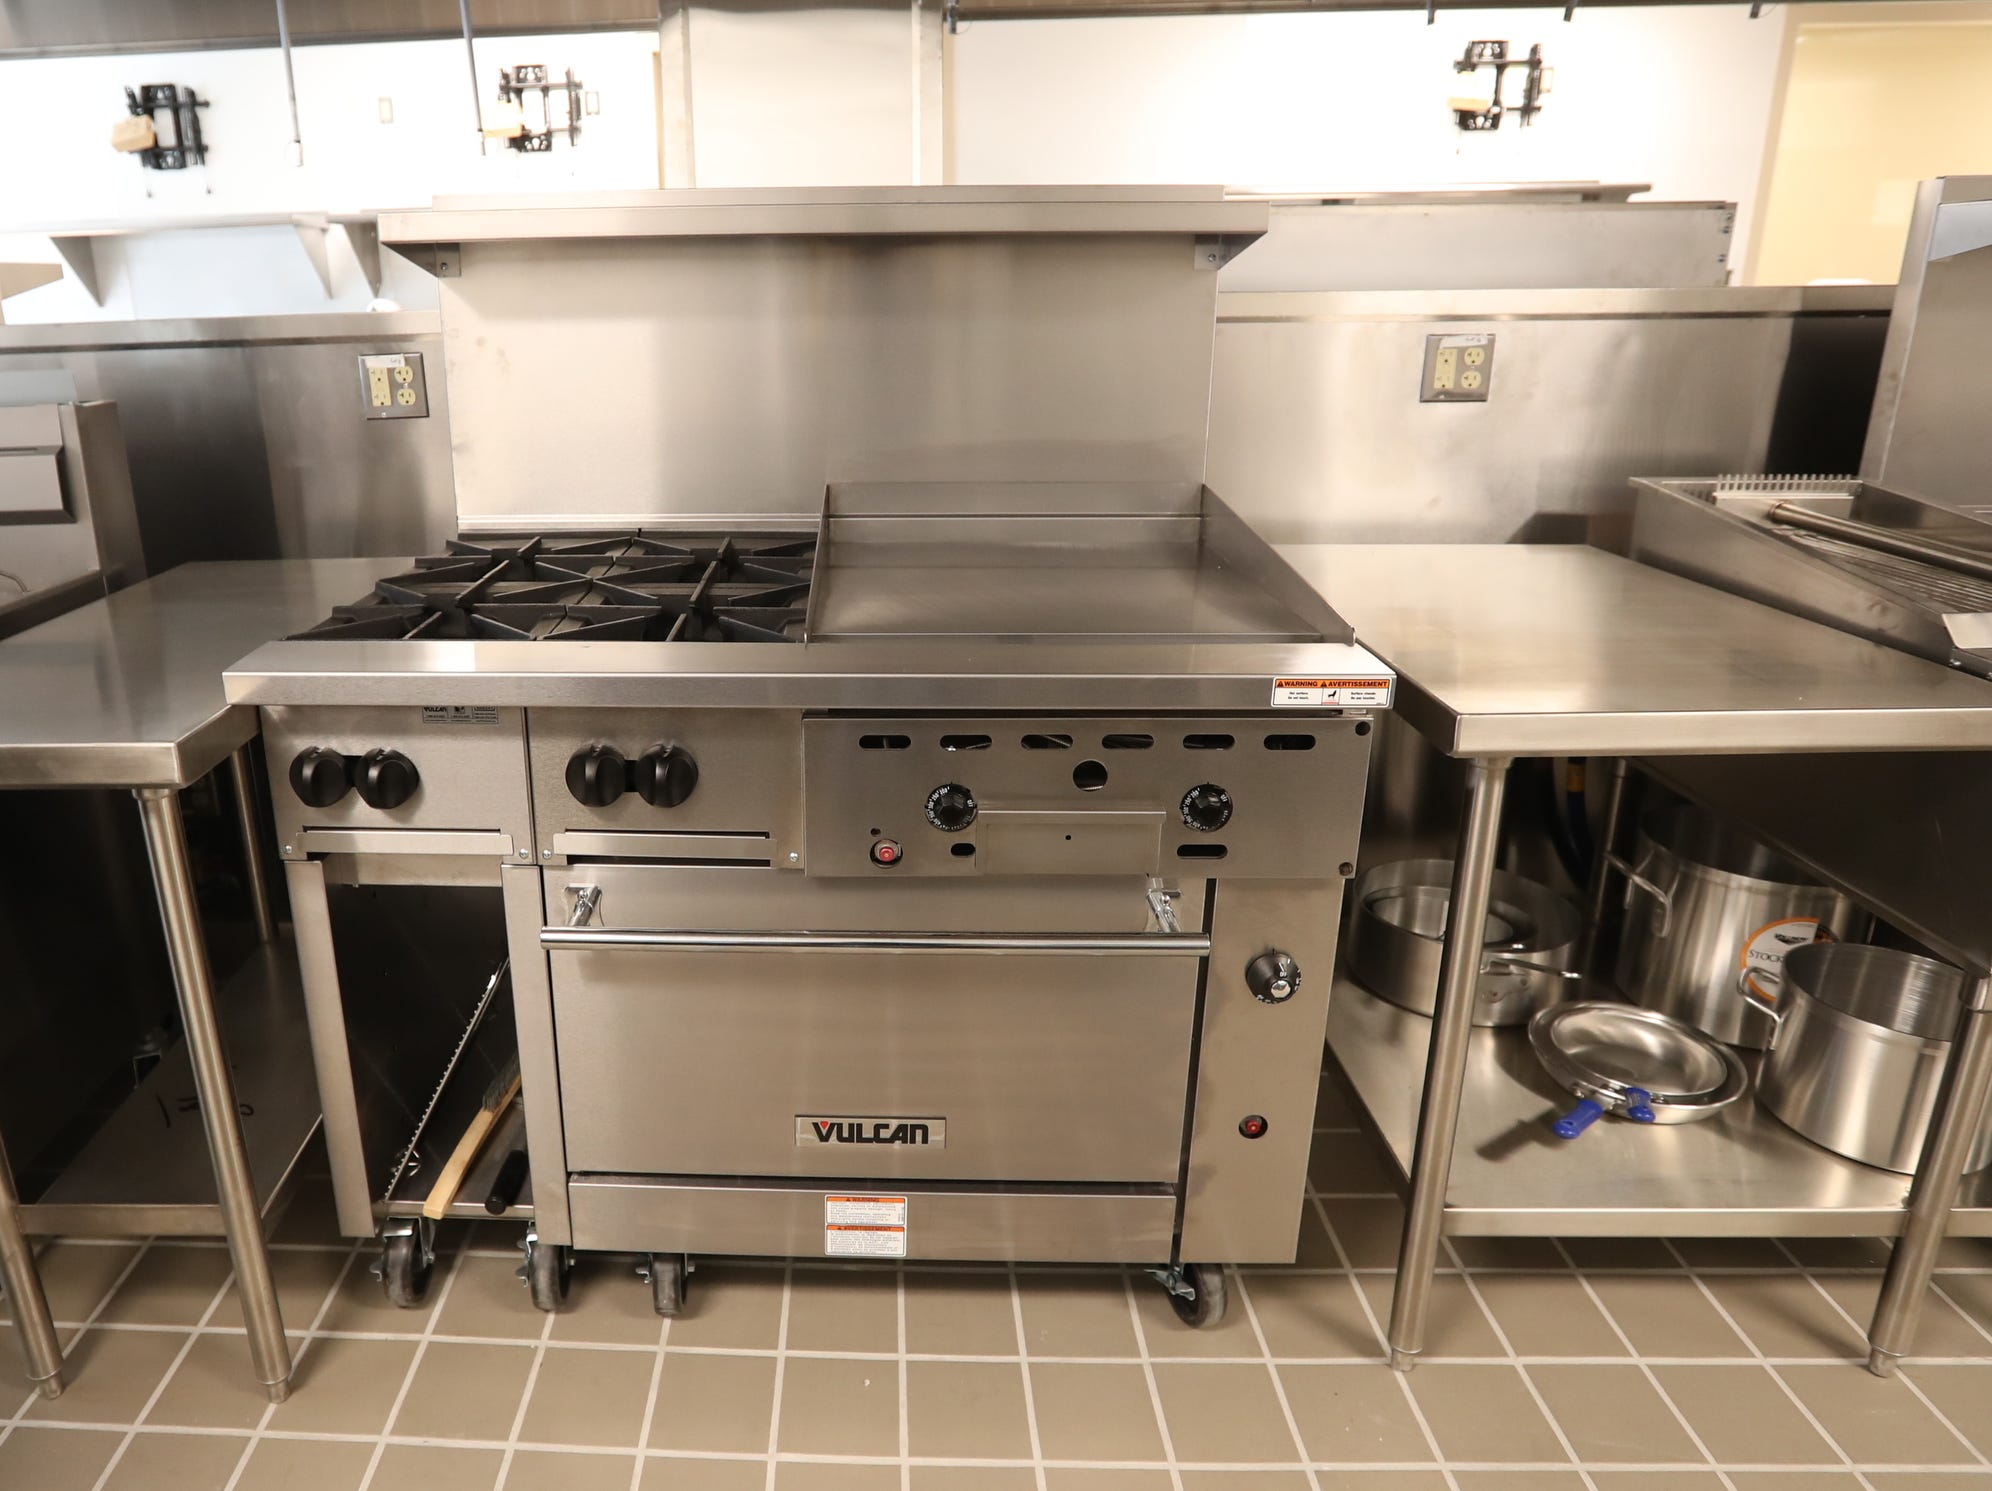 Professional tools await students in the classroom kitchen at Rockland Community College's Hospitality and Culinary Arts Center in Nyack on Thursday, January 17, 2019.